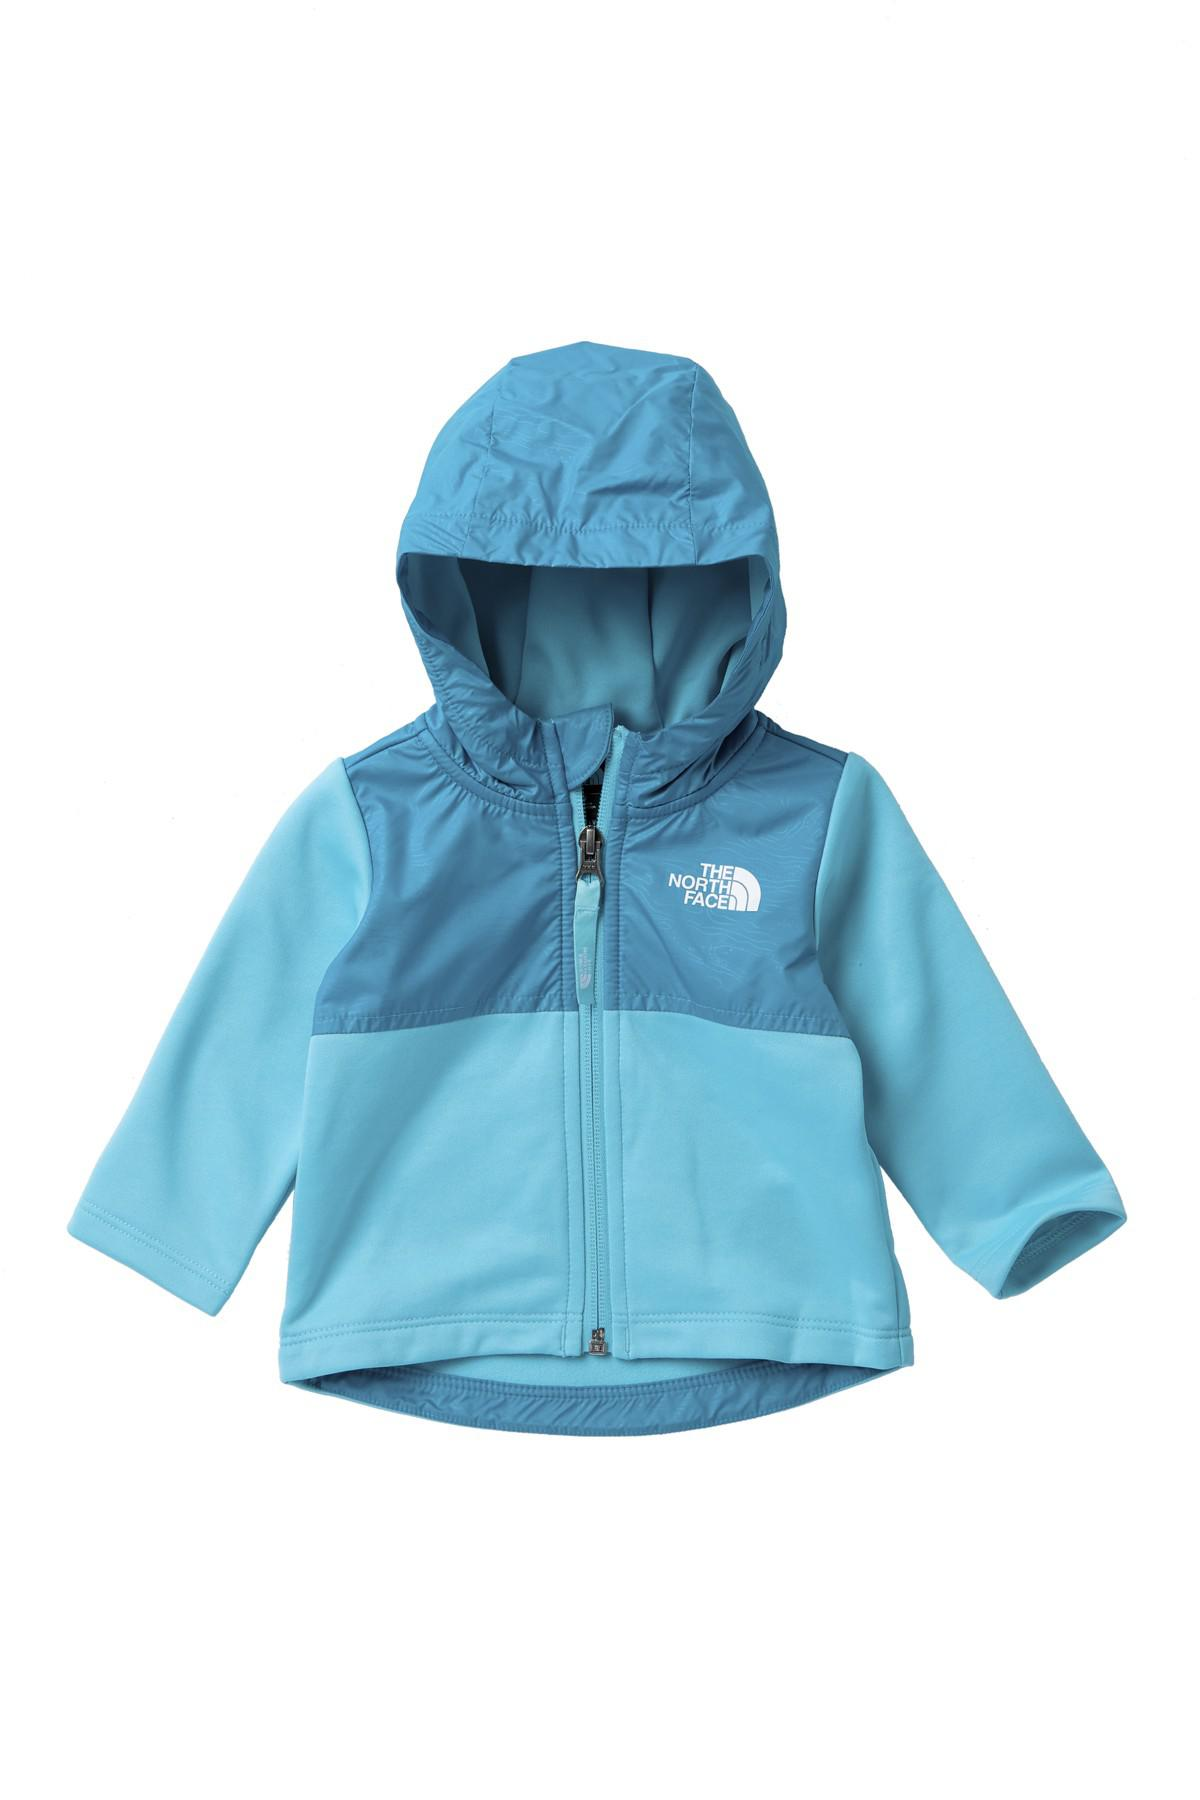 6dcee4fc1c46 Lyst - The North Face Kickin It Hooded Jacket (baby Boys) in Blue ...